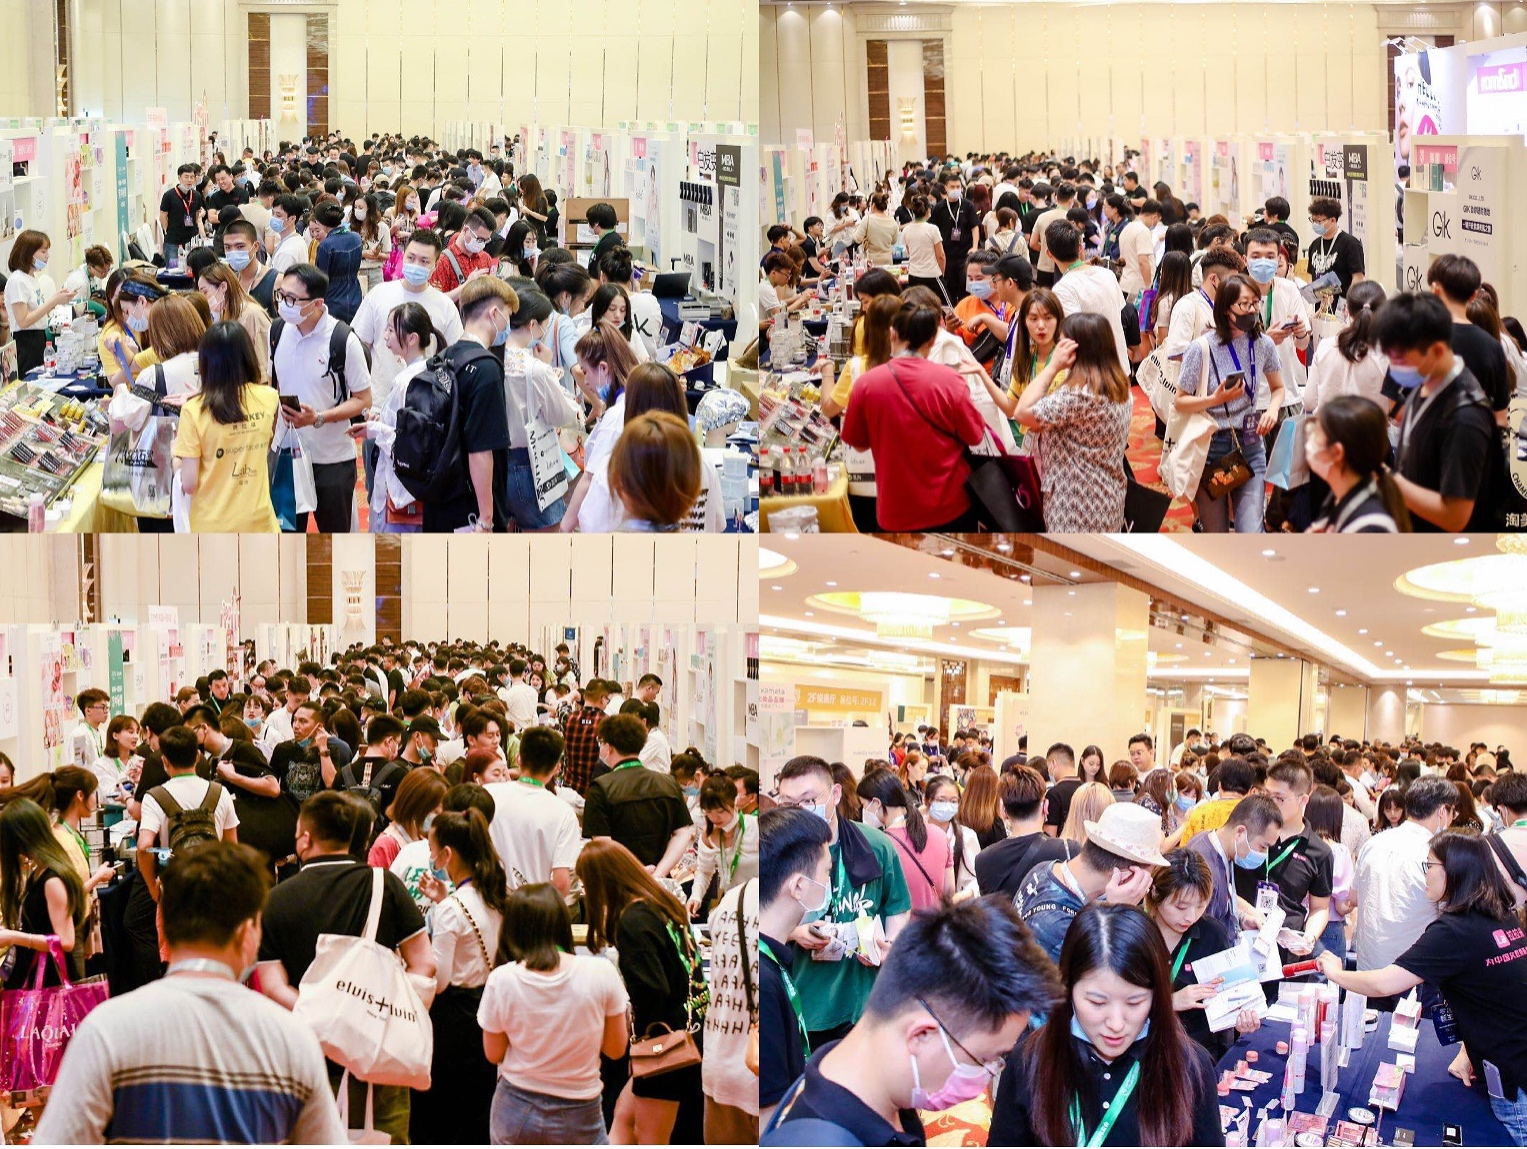 The spectacular TBCCCs brand fair with more than 1000 brands